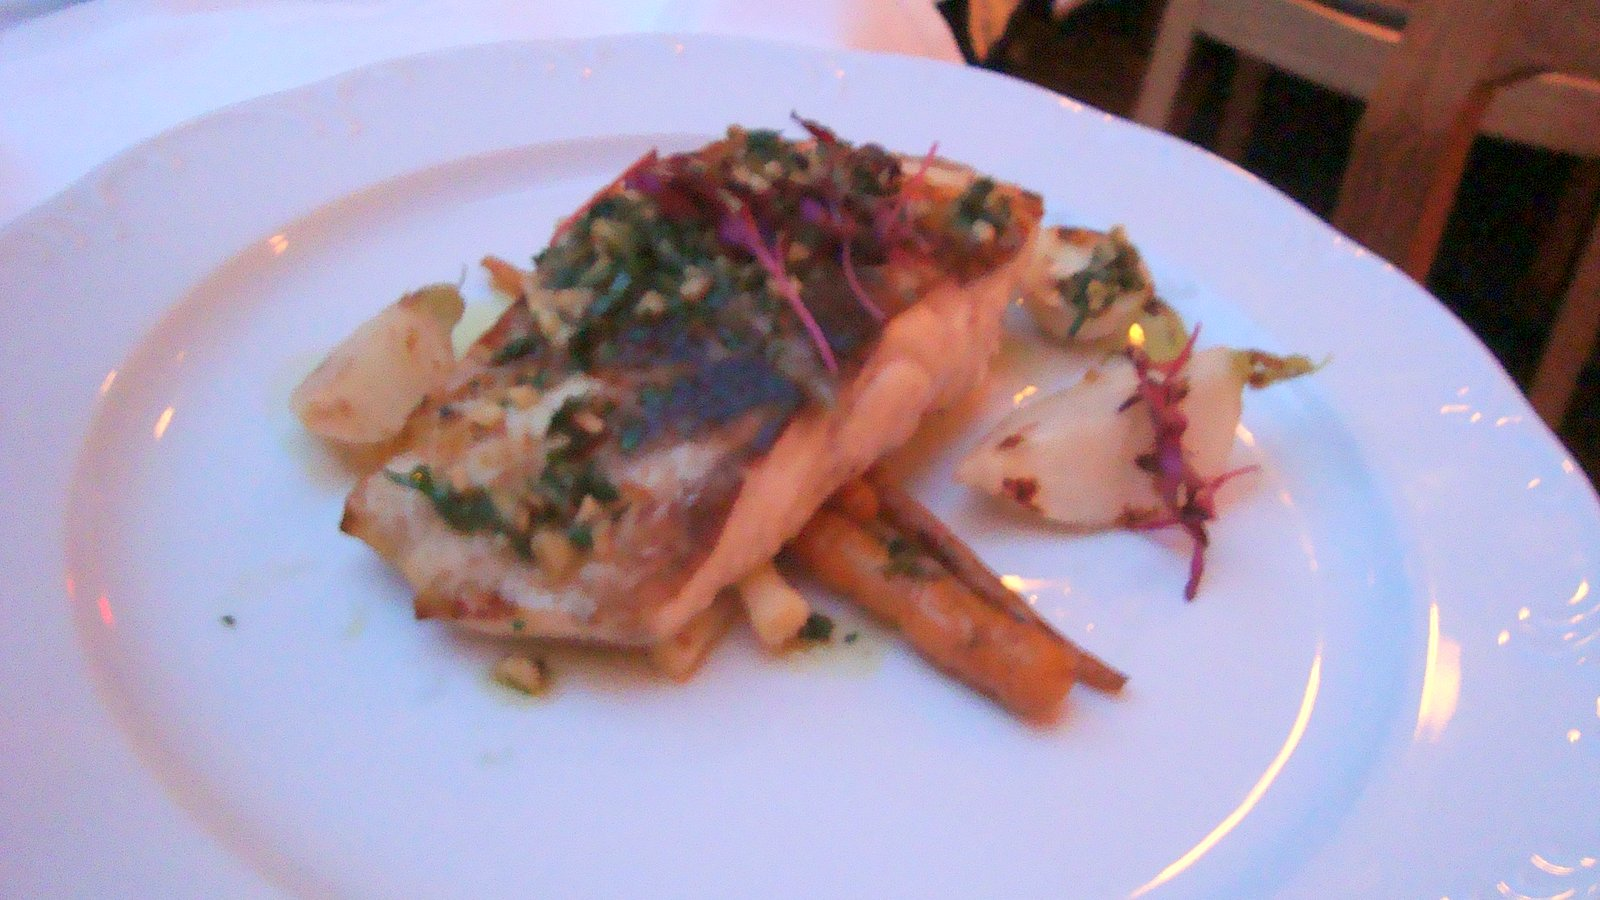 Grilled Wild Striped Bass with Charred Carrots, Turnips, Baby Leeks and Parsley- Walnut Gremolata